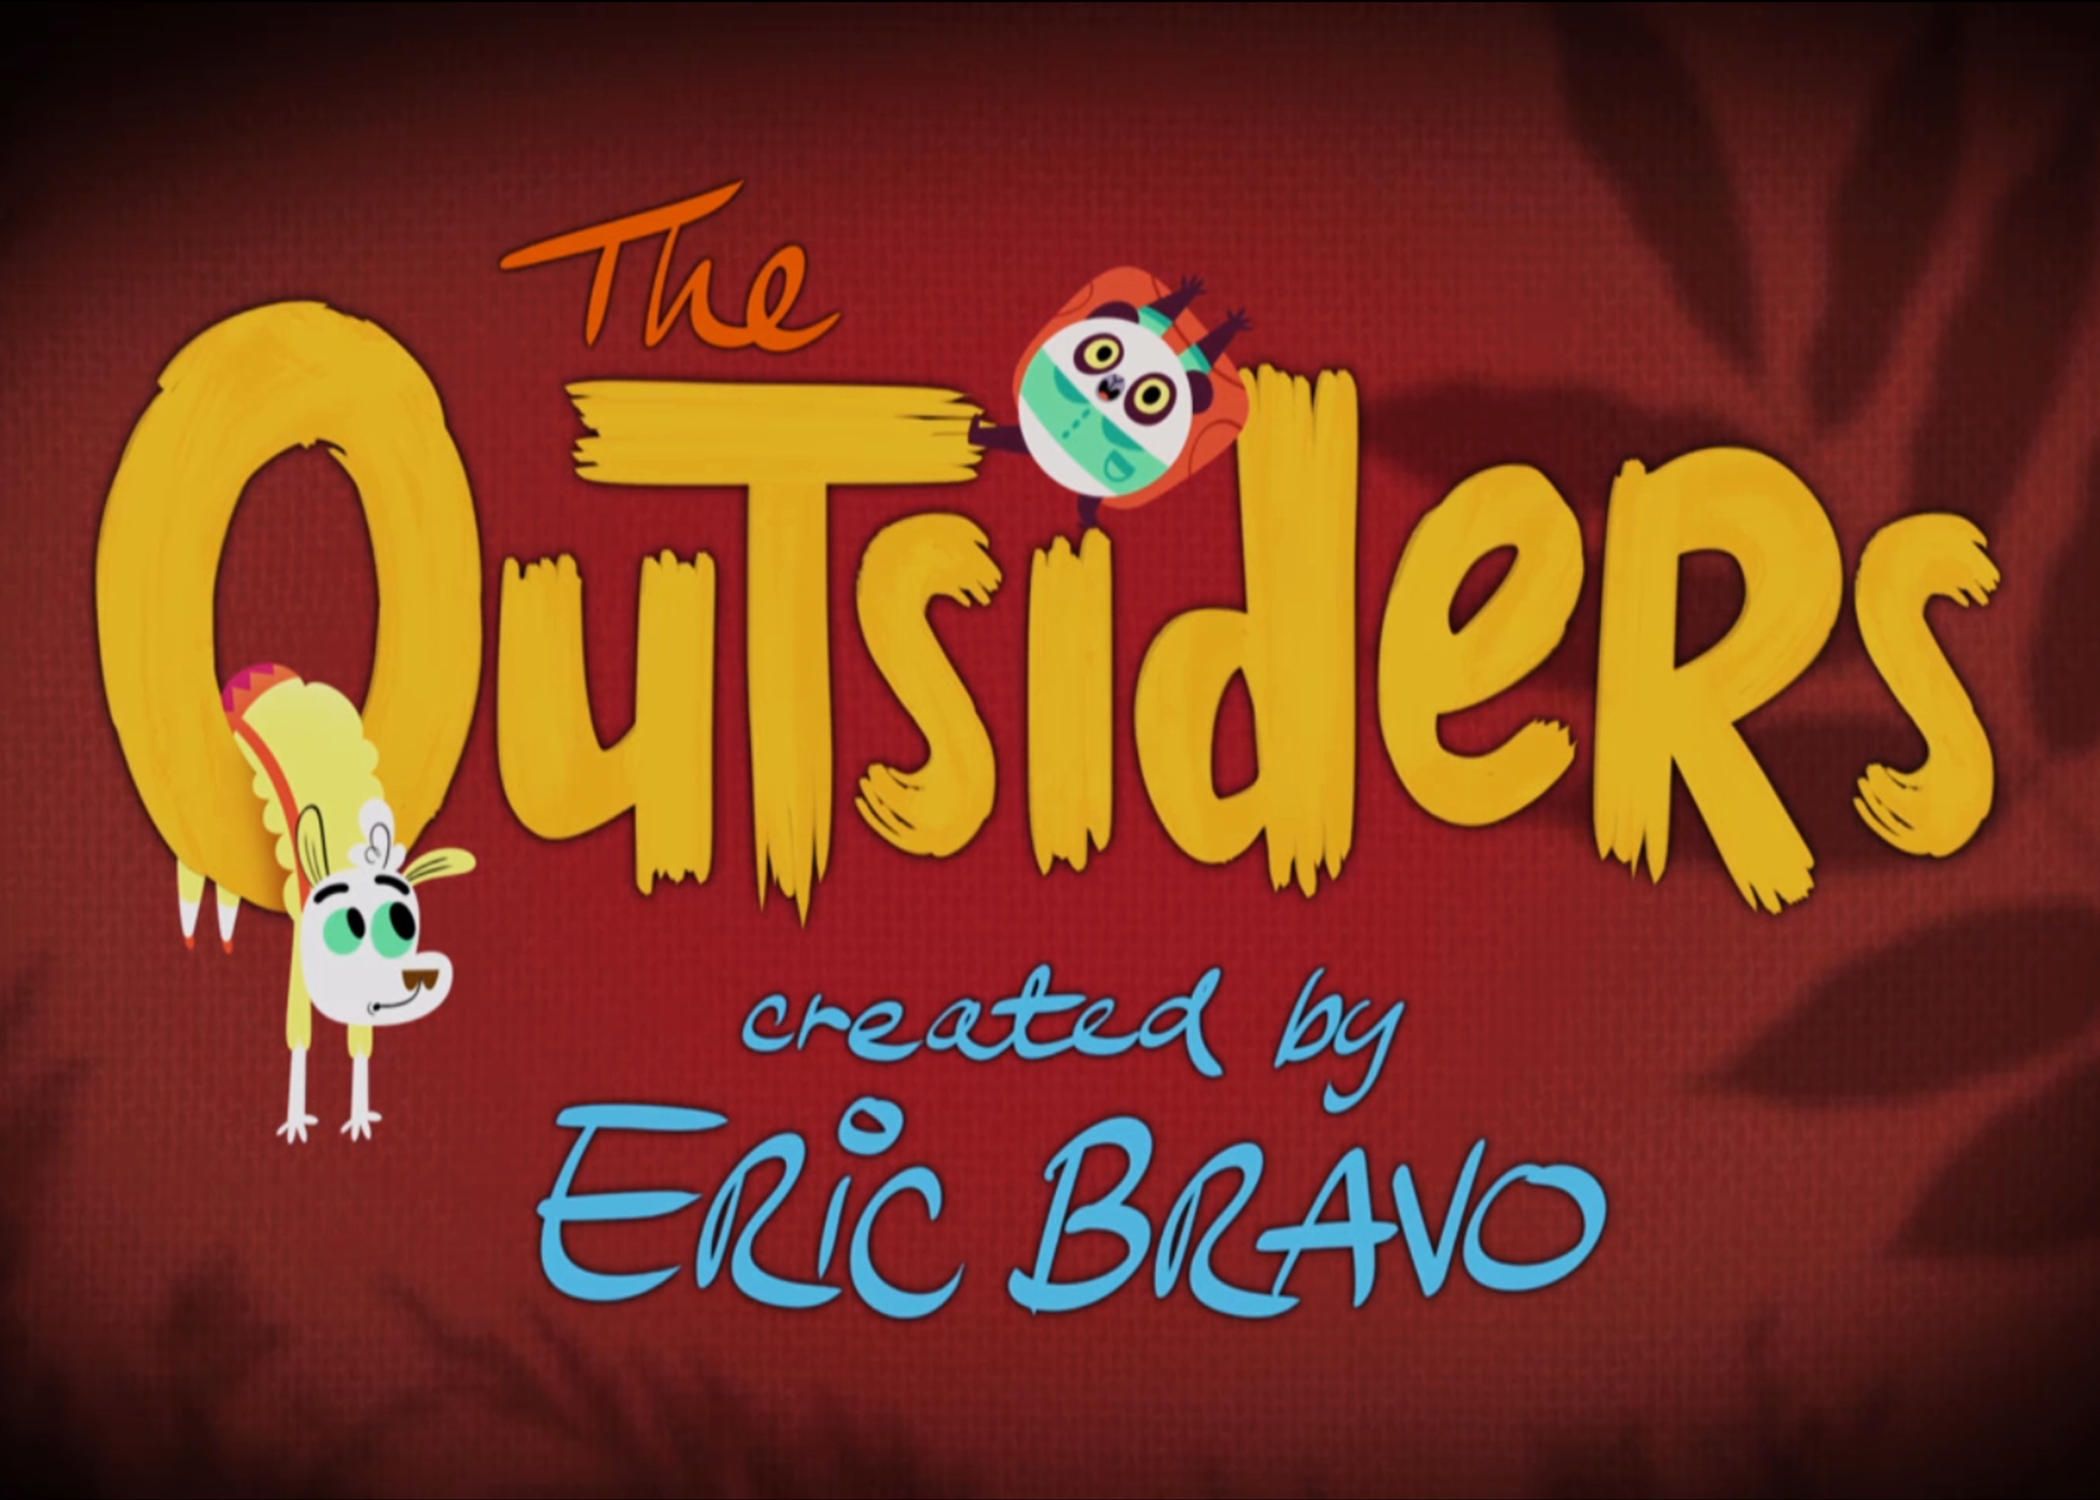 The Outsiders - Nickelodeon